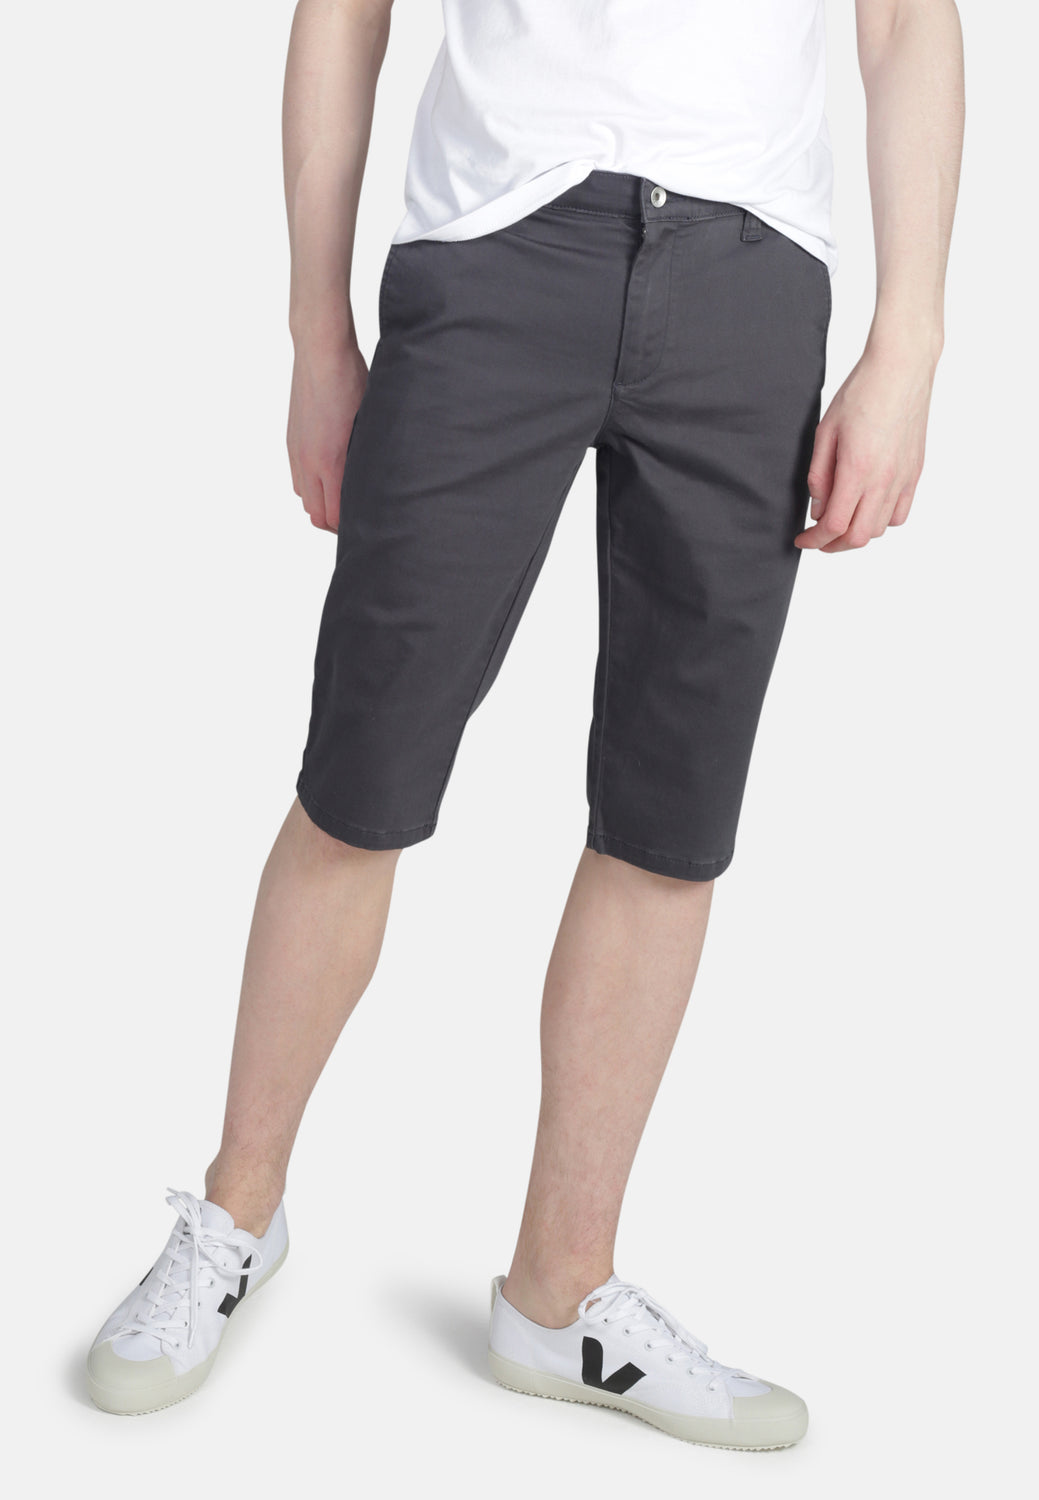 CHINO SHORTS // Organic Sateen Chino Short in Slate - Monkee Genes Organic Jeans Denim - Men's Shorts Monkee Genes Official  Monkee Genes Official